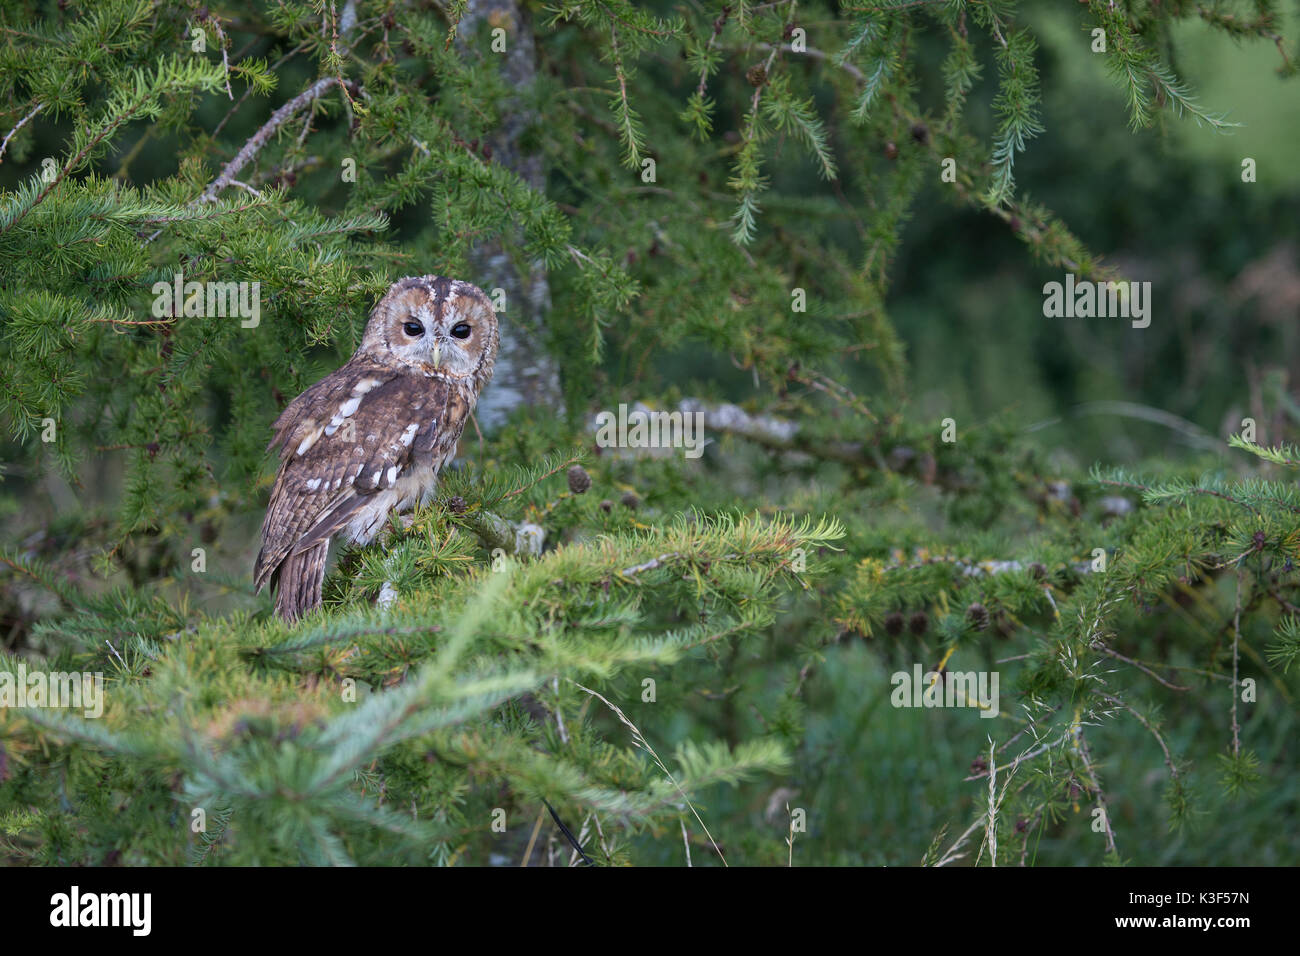 Tawny Owl Strix Aluco perched on a conifer branch - Stock Image